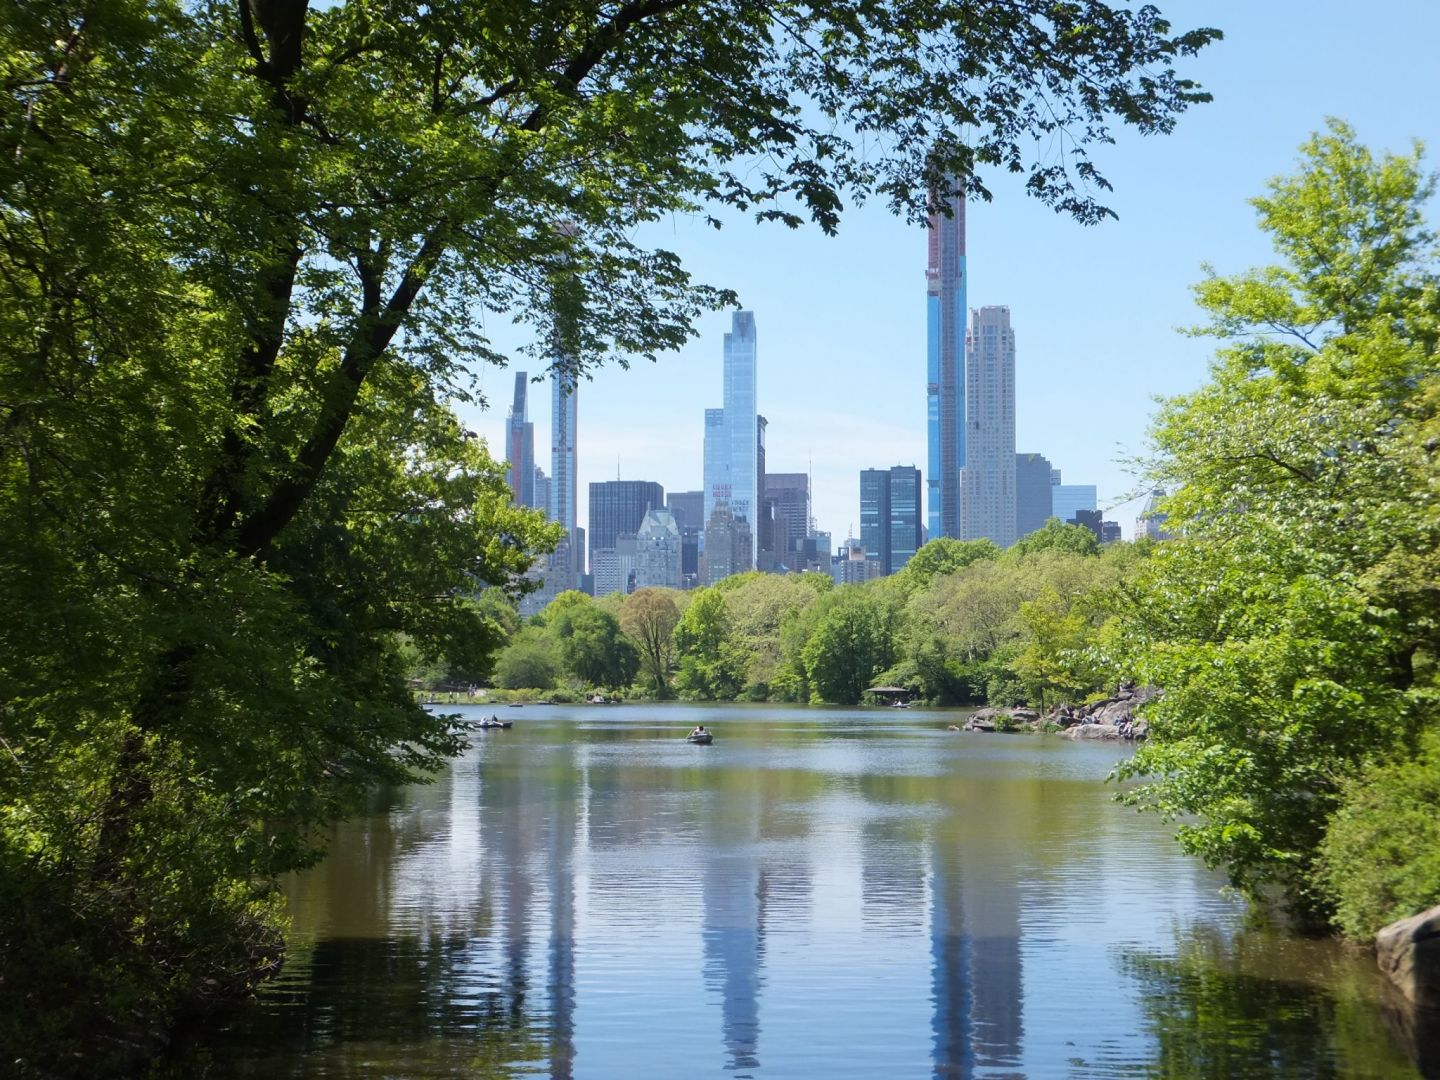 New York: A Three Day Itinerary for New York City - Being